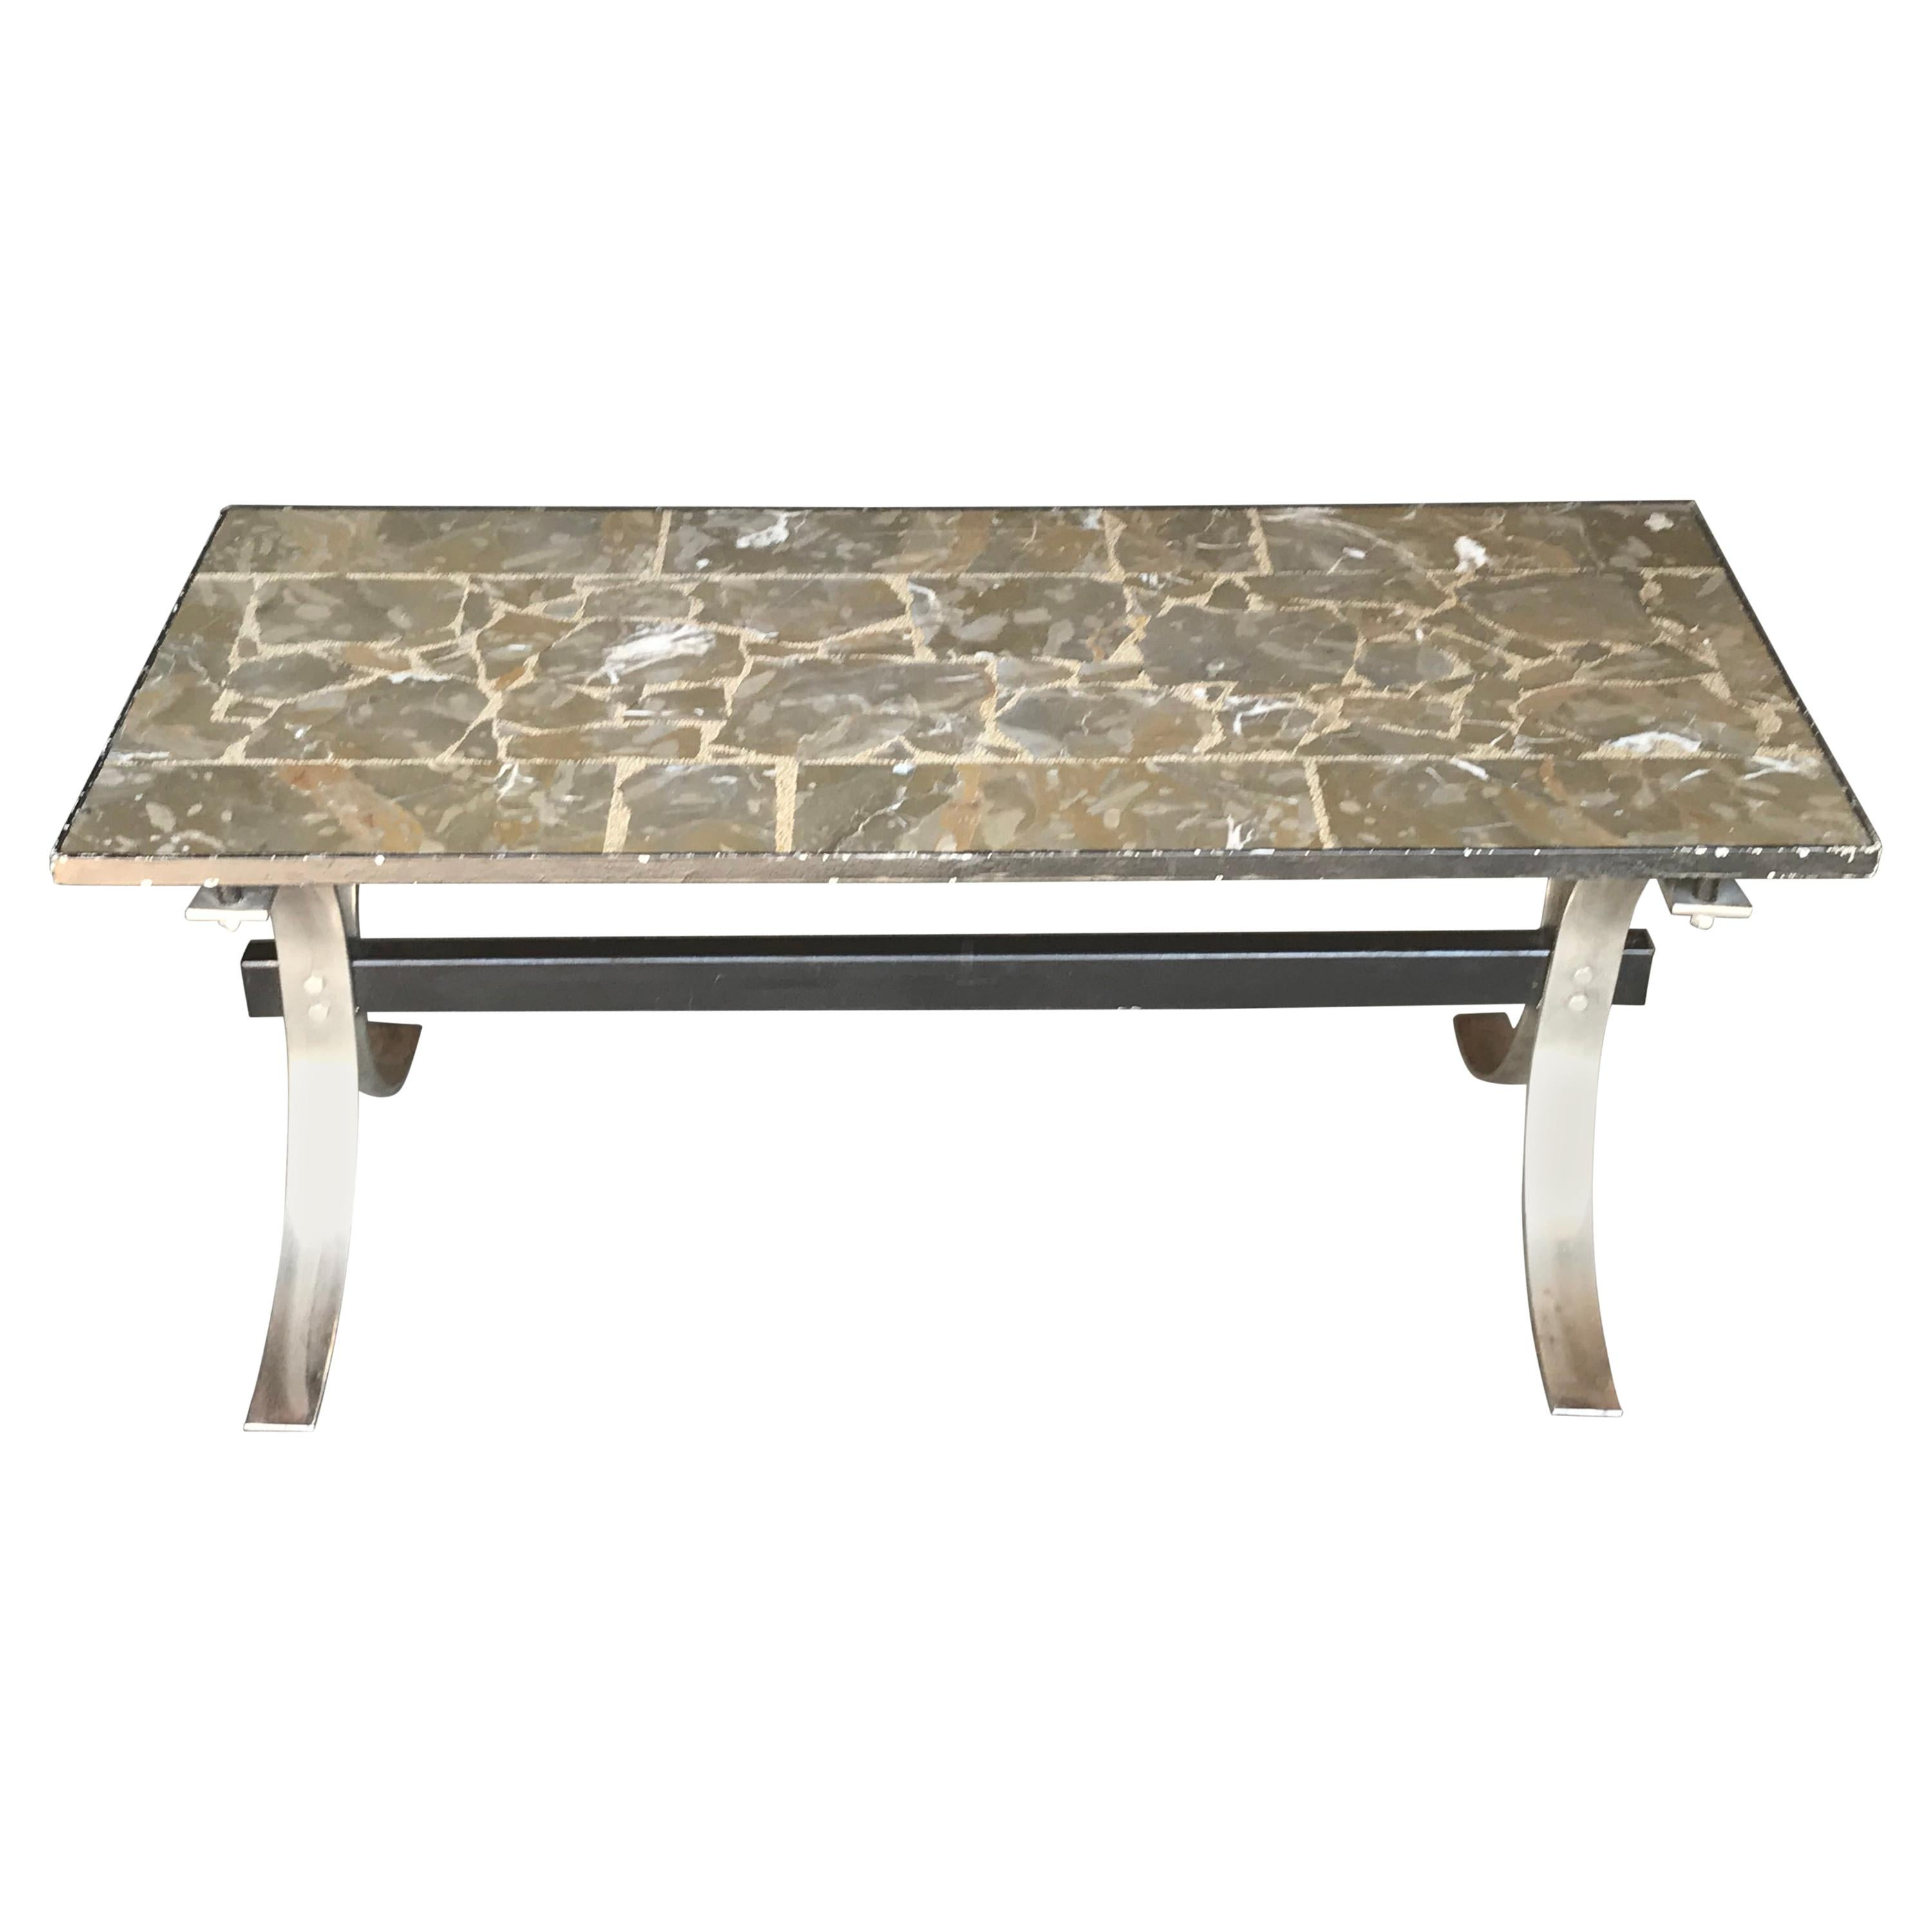 Midcentury Chrome And Marble Coffee Table, 1950s